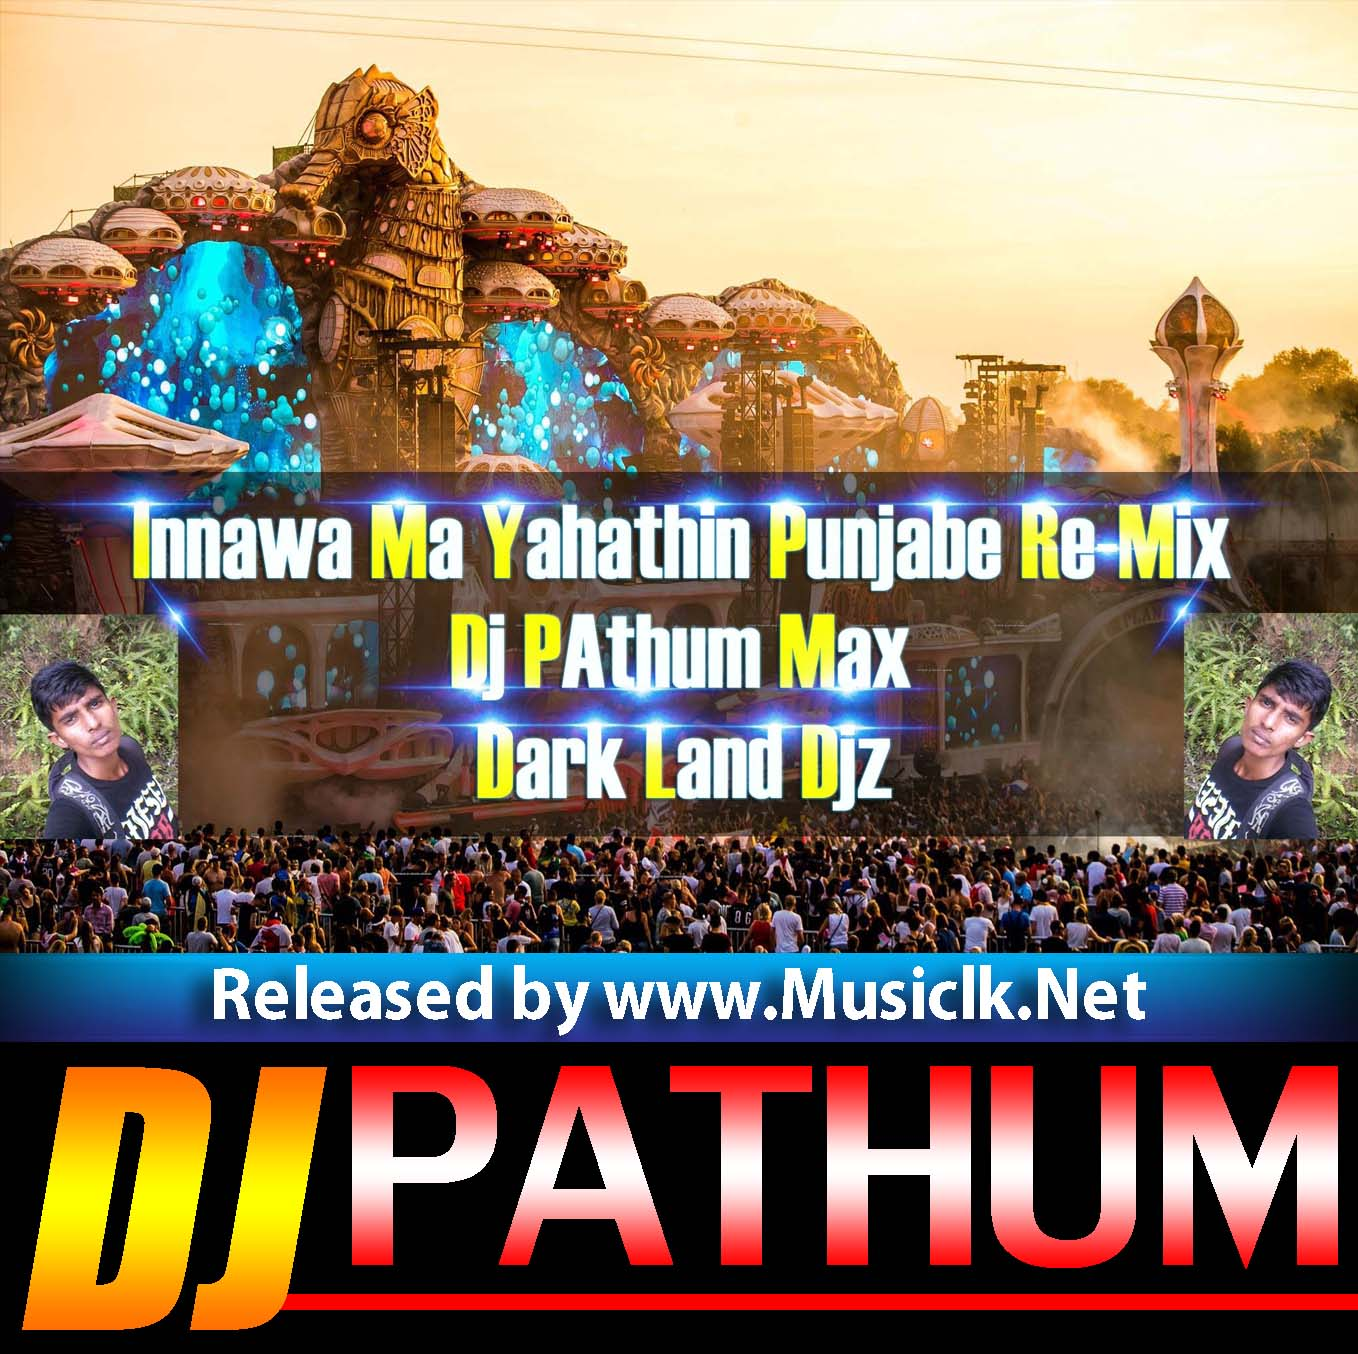 Dj Punjab Singa One Man: Innawa Ma Yahathin Punjab Re-Mix Dj PAthum Max DLD